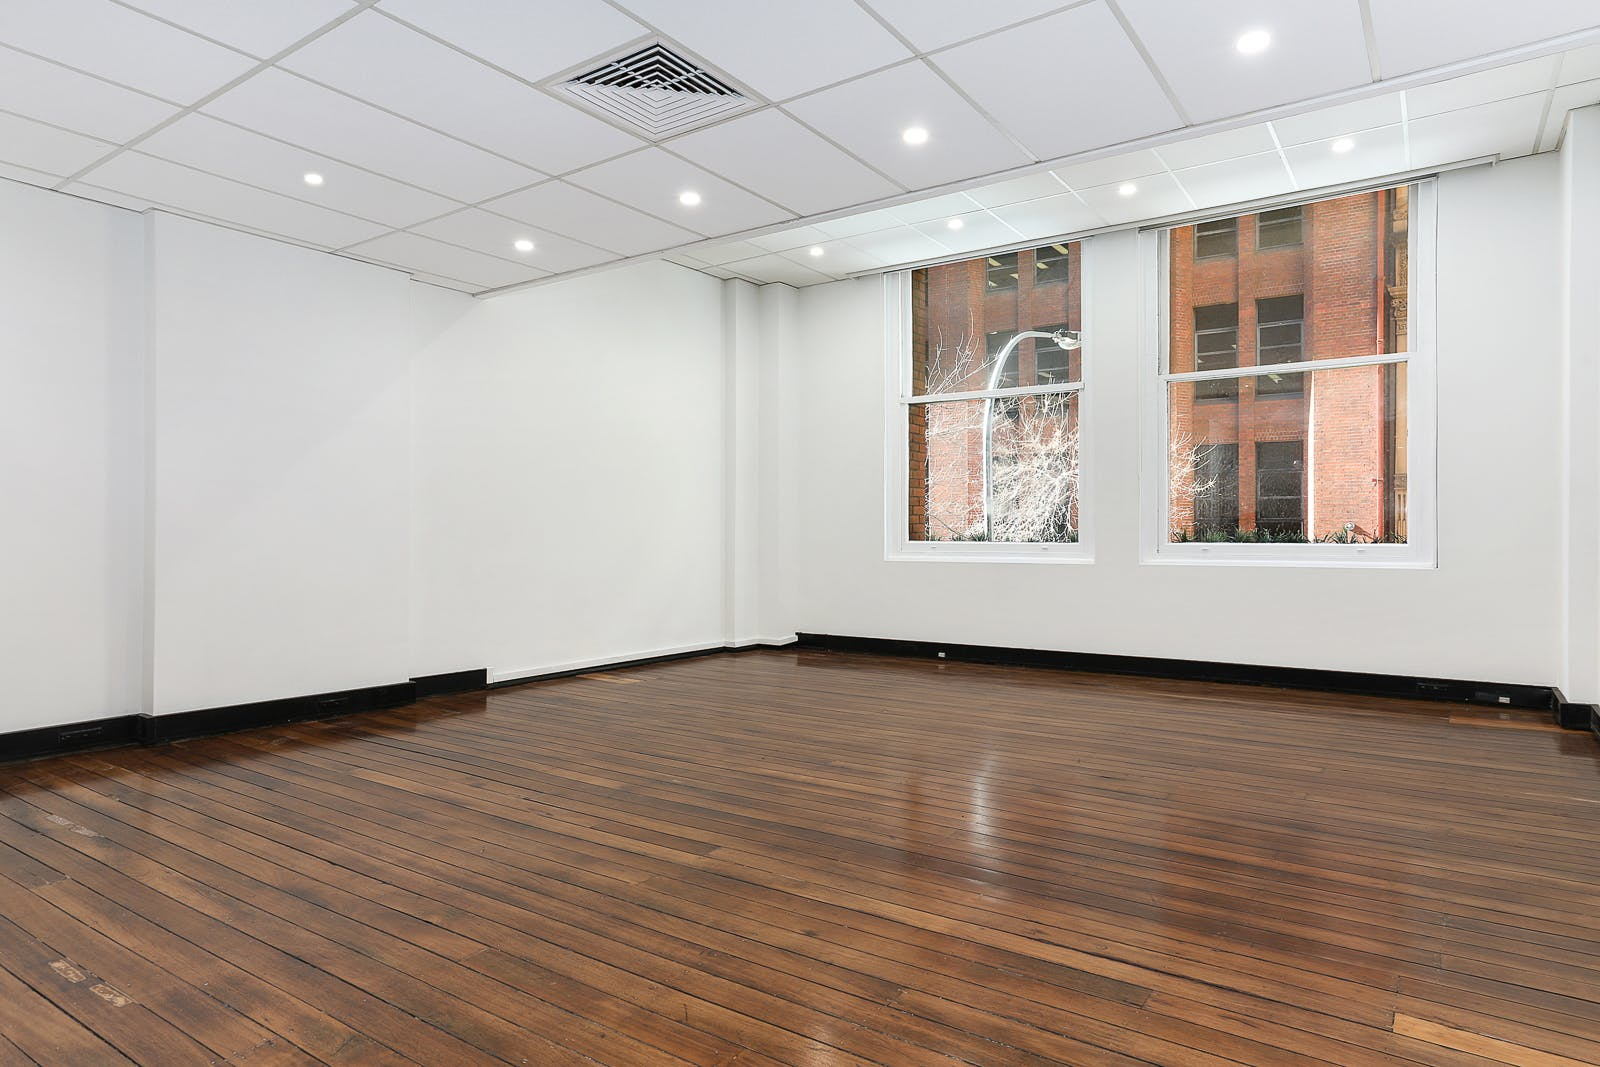 Open Space, Creative Studio, multi-use area at Sydney CBD Studio, image 1